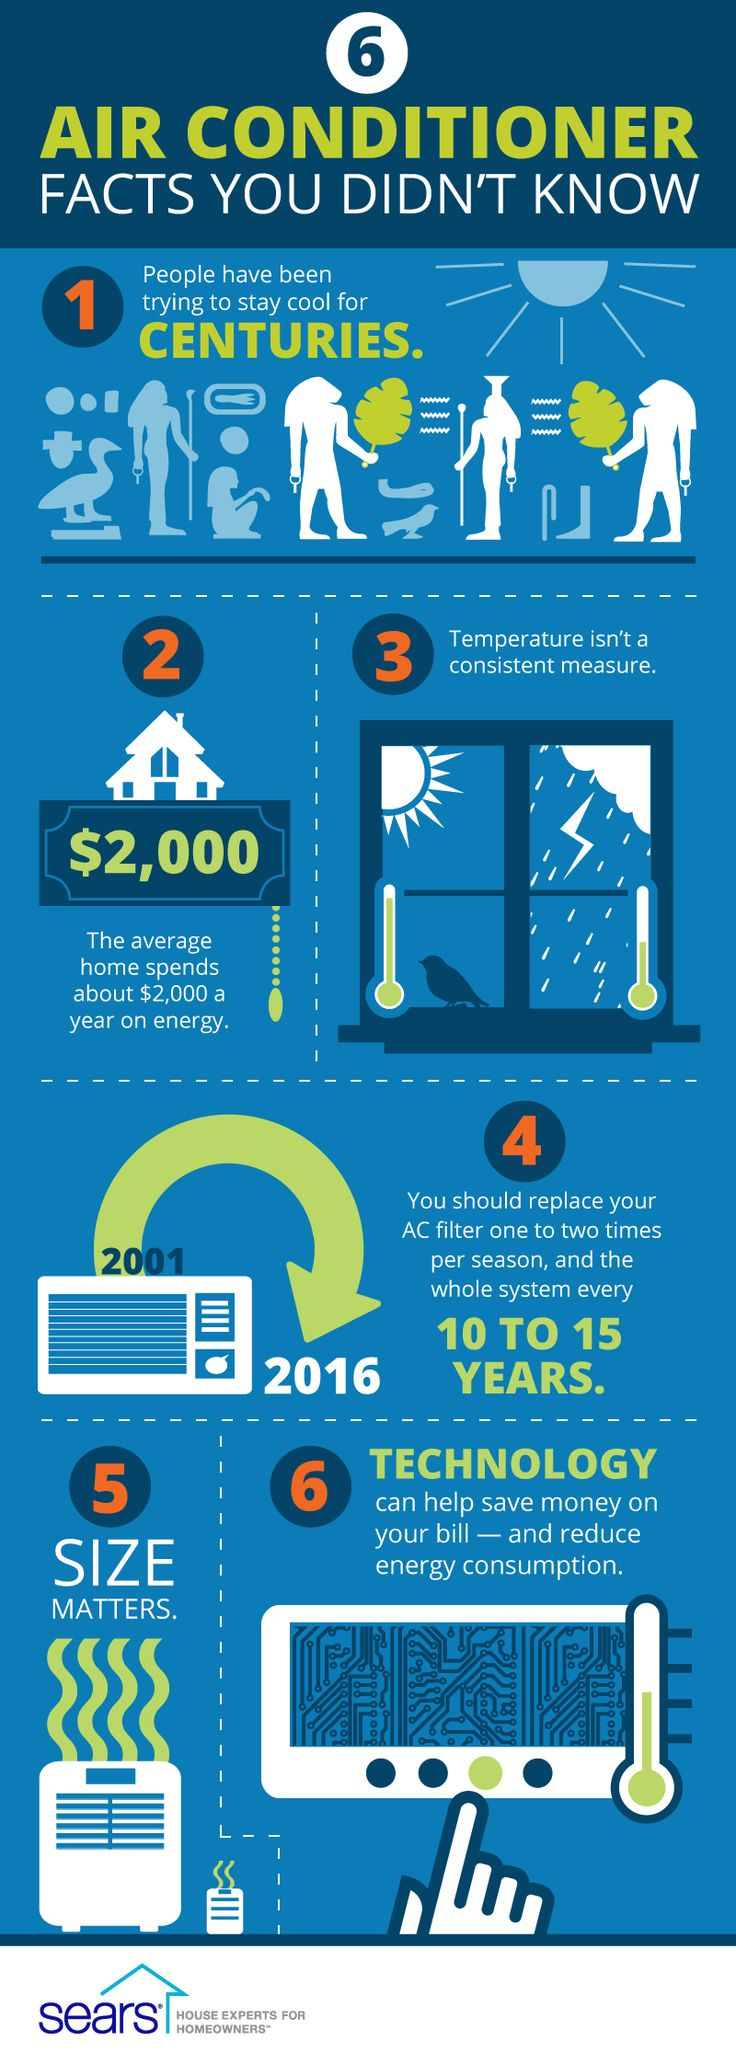 6 Air Conditioner Facts You Didn't Know Here's what you